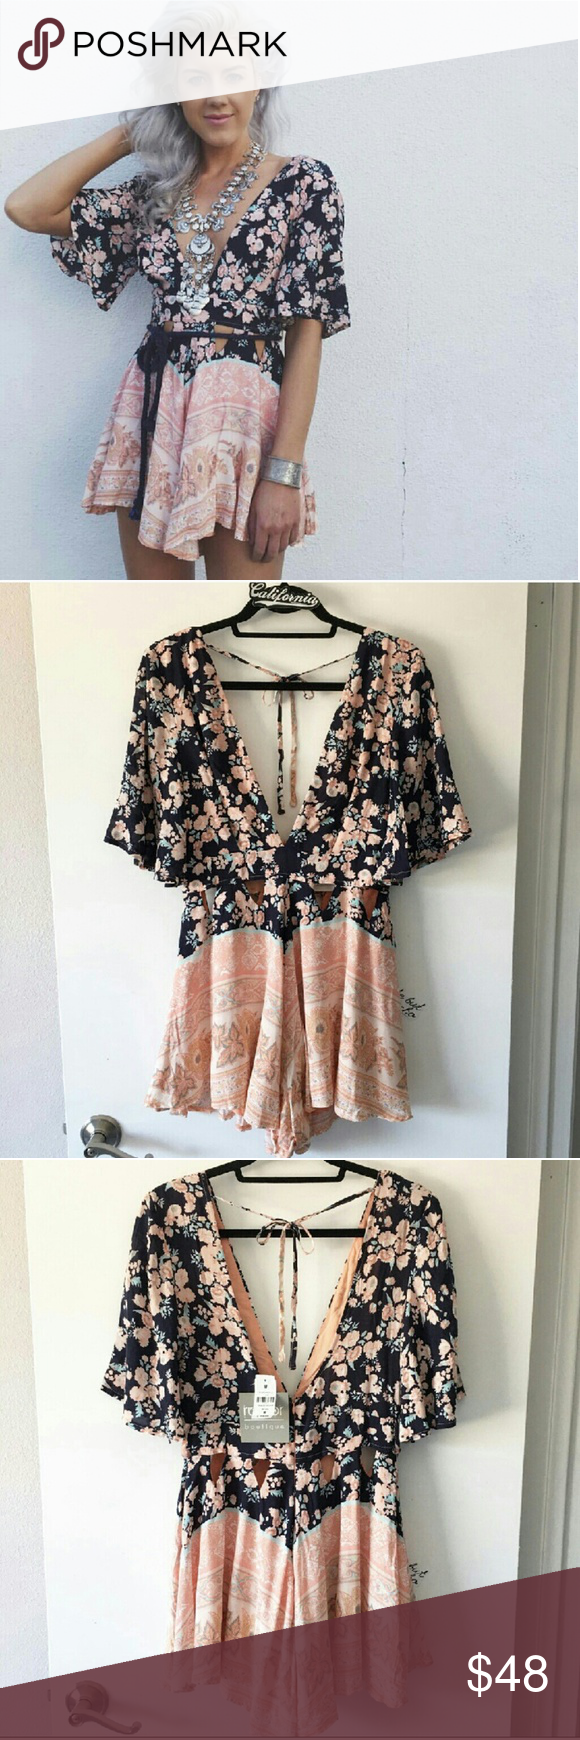 c7eafafd244a NEW LF Rumor Boutique floral romper Adorable floral navy and peach romper  by Rumor Boutique sold at LF Stores. This romper has a cute floral print